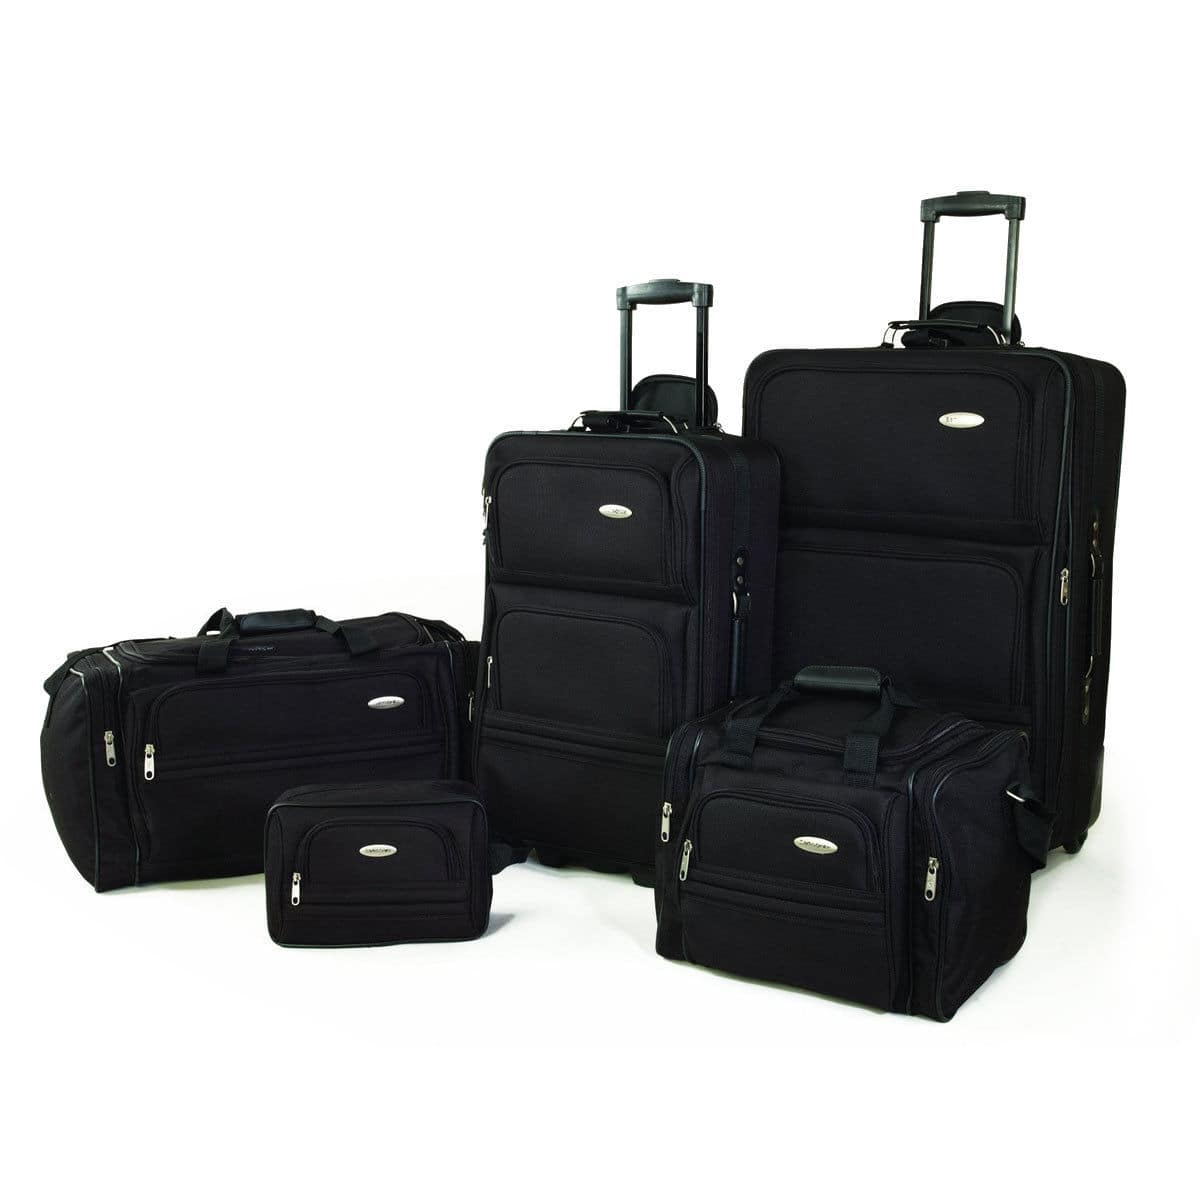 Samsonite 5-Piece Nested Luggage Set (black, navy or red)  $85 + Free Shipping